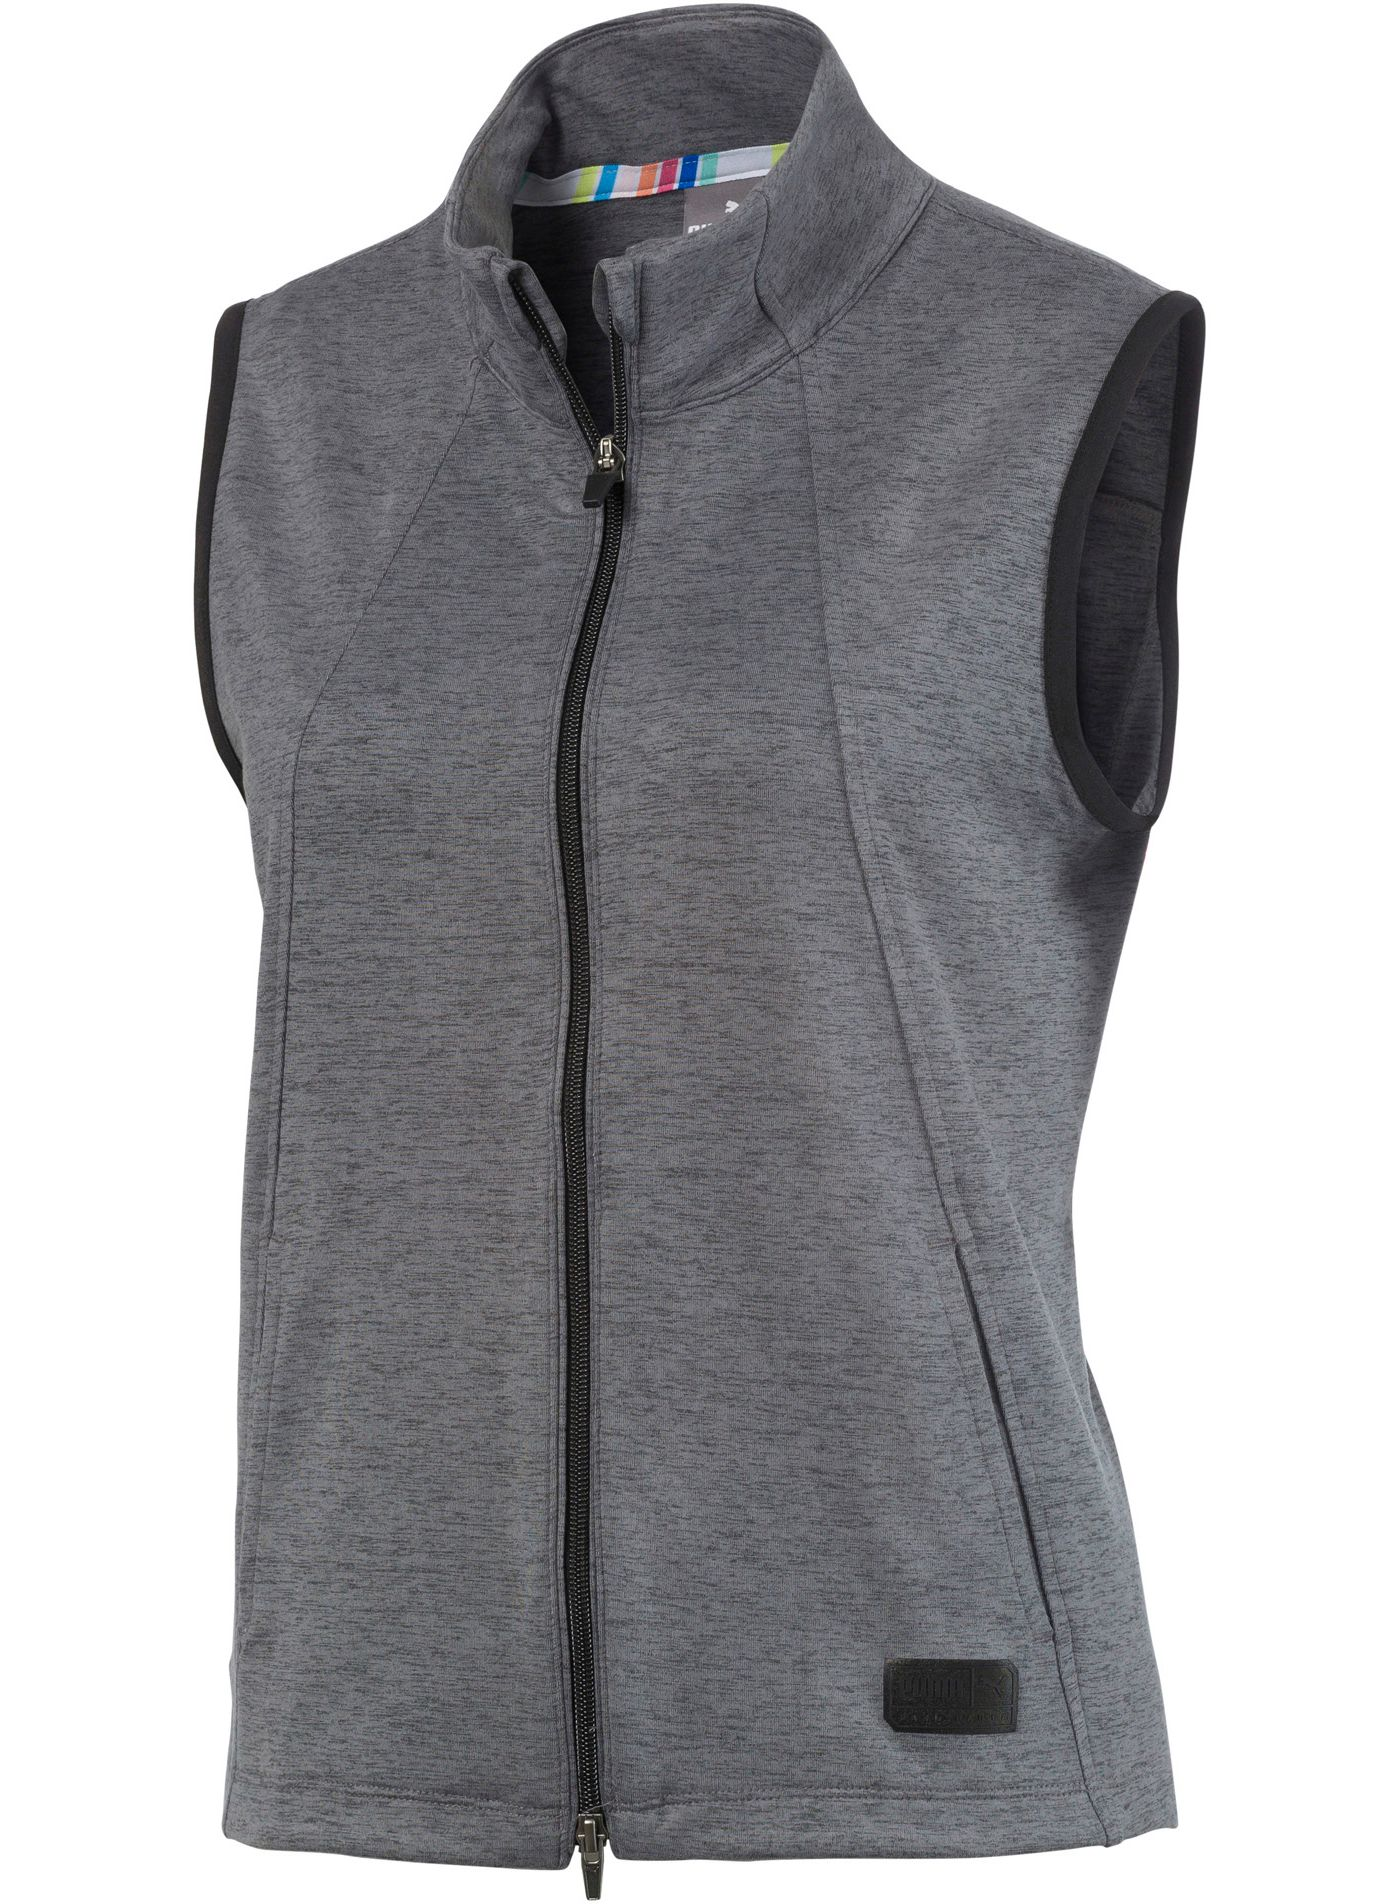 PUMA Women's Warm Up Sleeveless Golf Vest